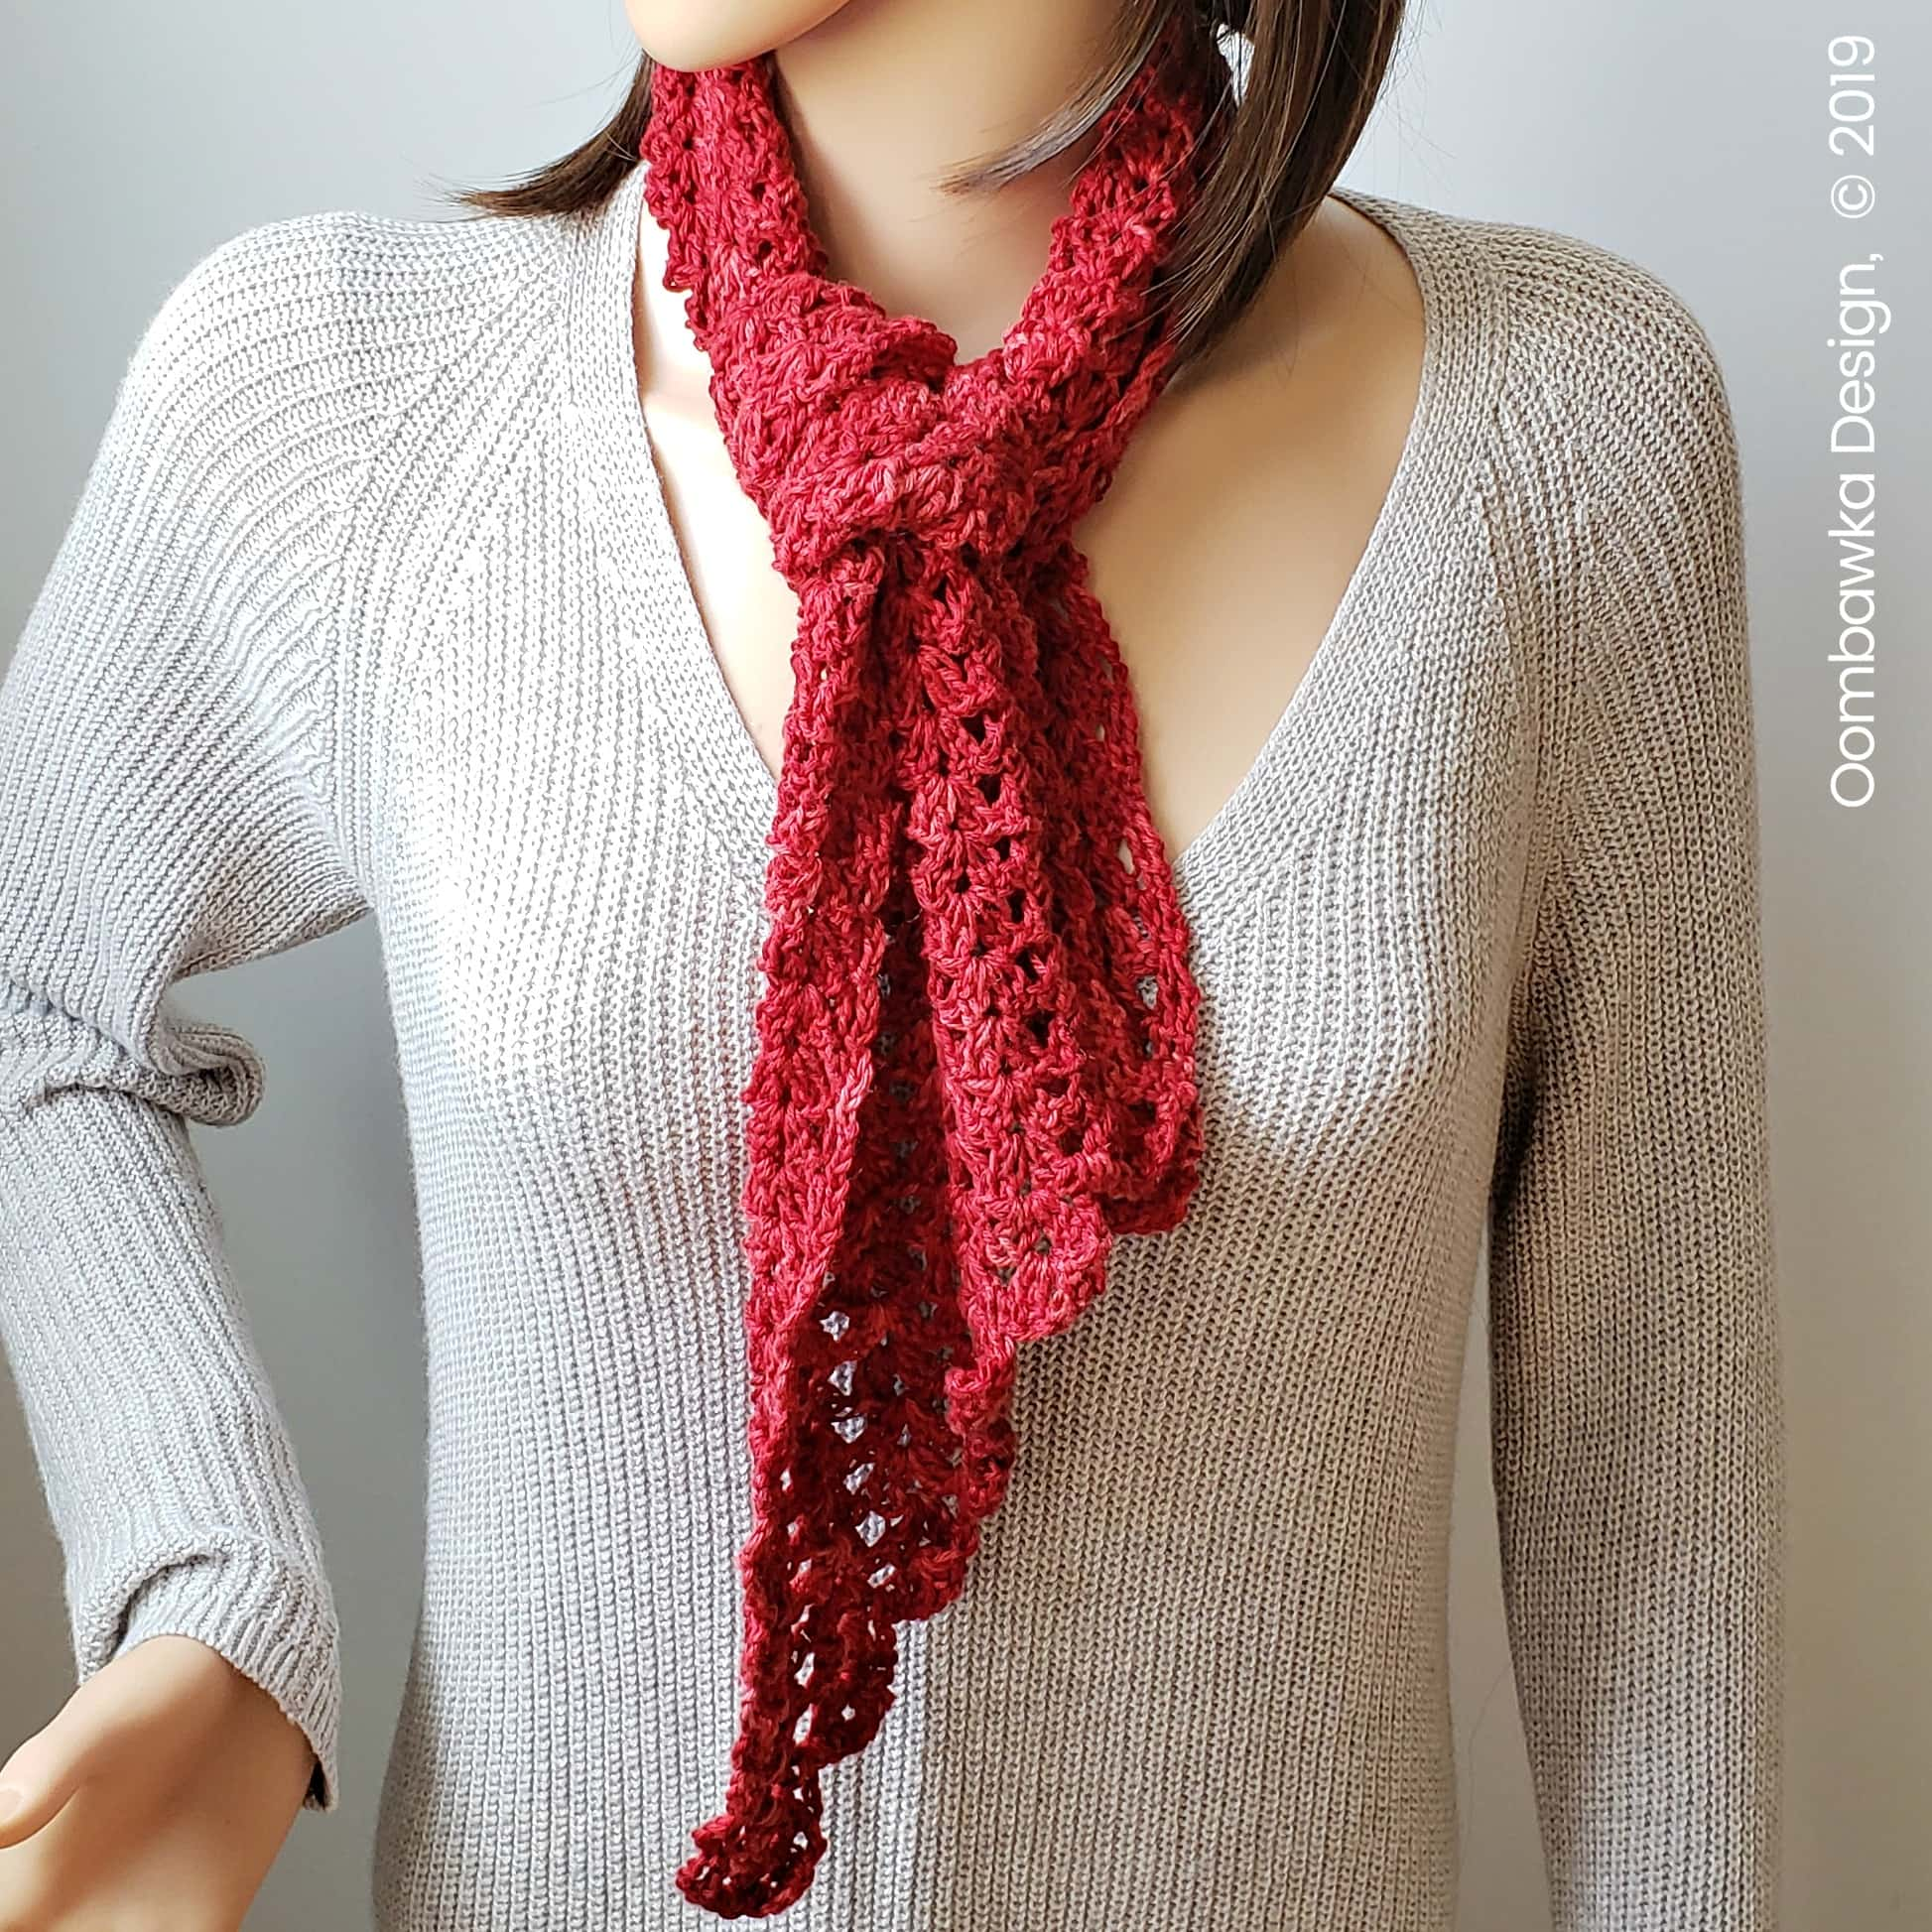 Sweet Cassidy Scarf Pattern. #scarfofthemonthclub2019 July Scarf of the Month Club Free Pattern. Pop by the blog to get the other 2 free crochet scarf patterns for July 2019.